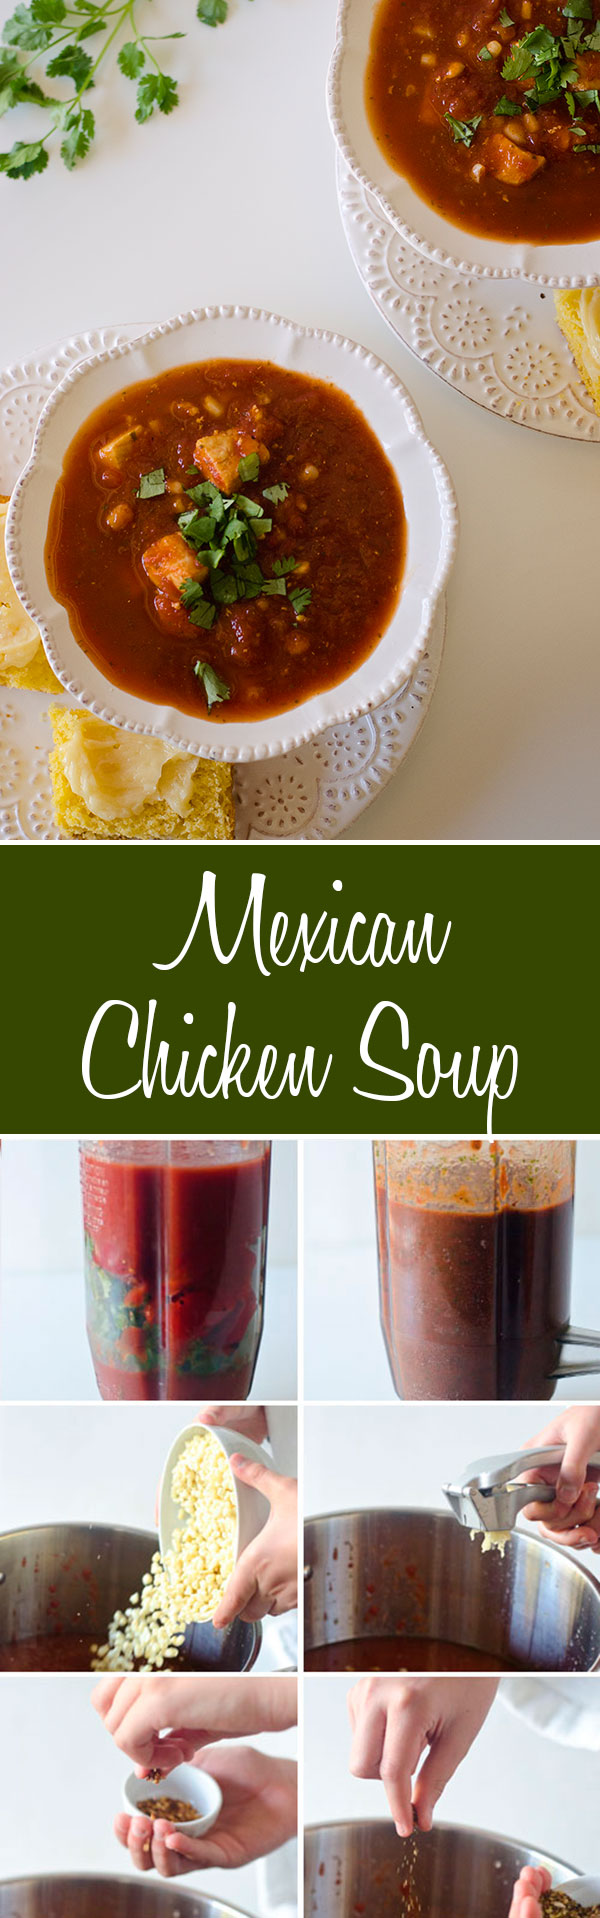 this soup is a favorite at our house, great flavors, wonderful texture and everyone wants more